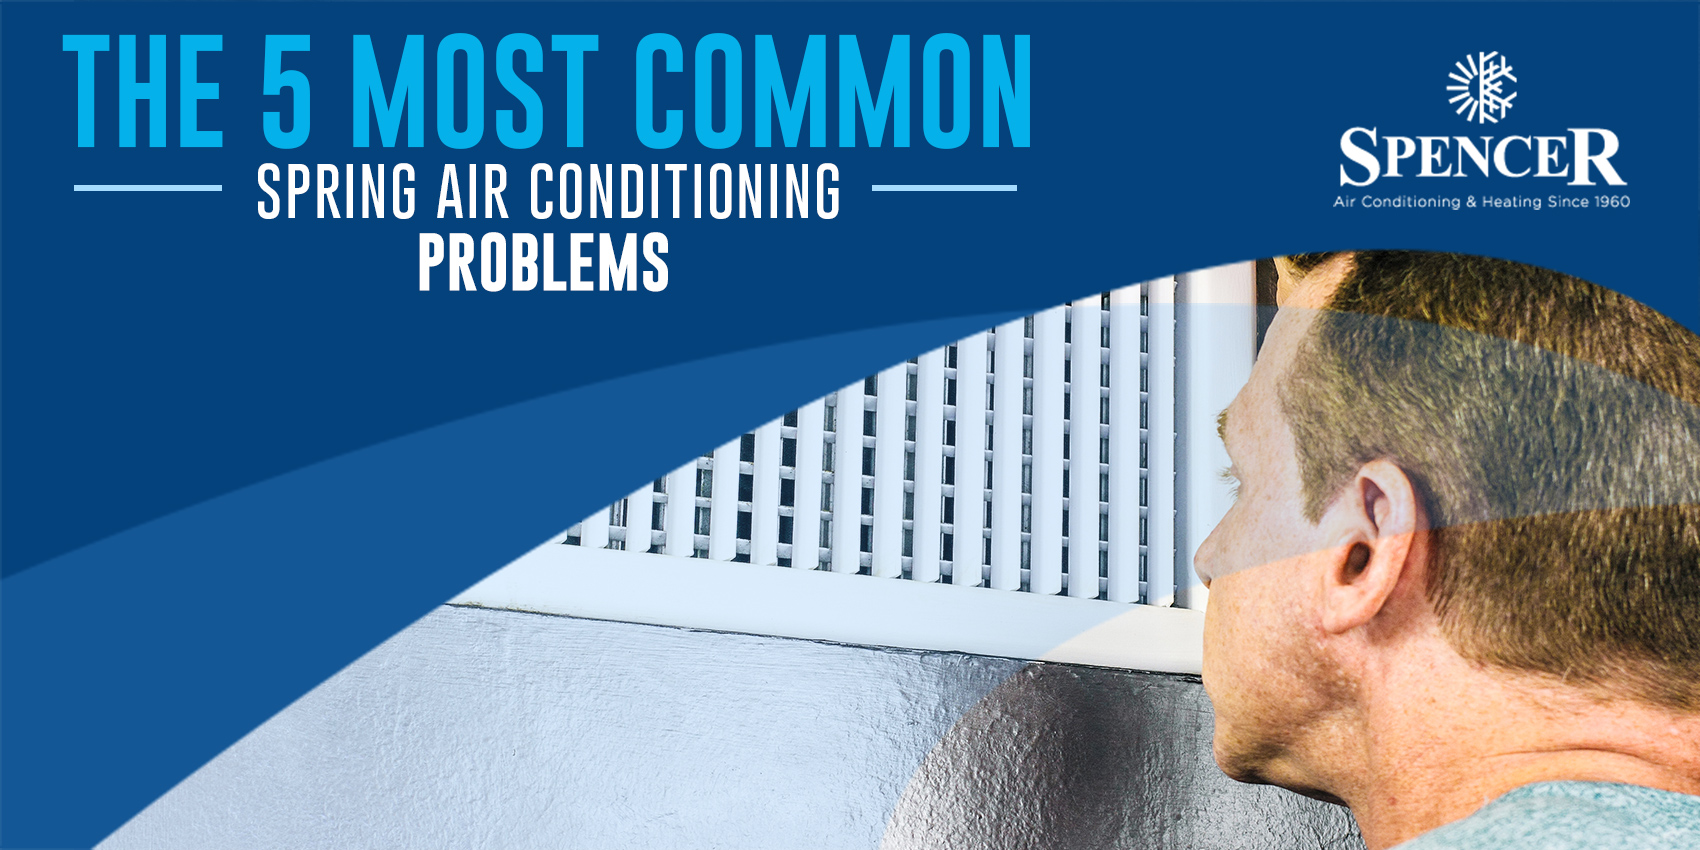 The 5 Most Common Spring Air Conditioning Problems